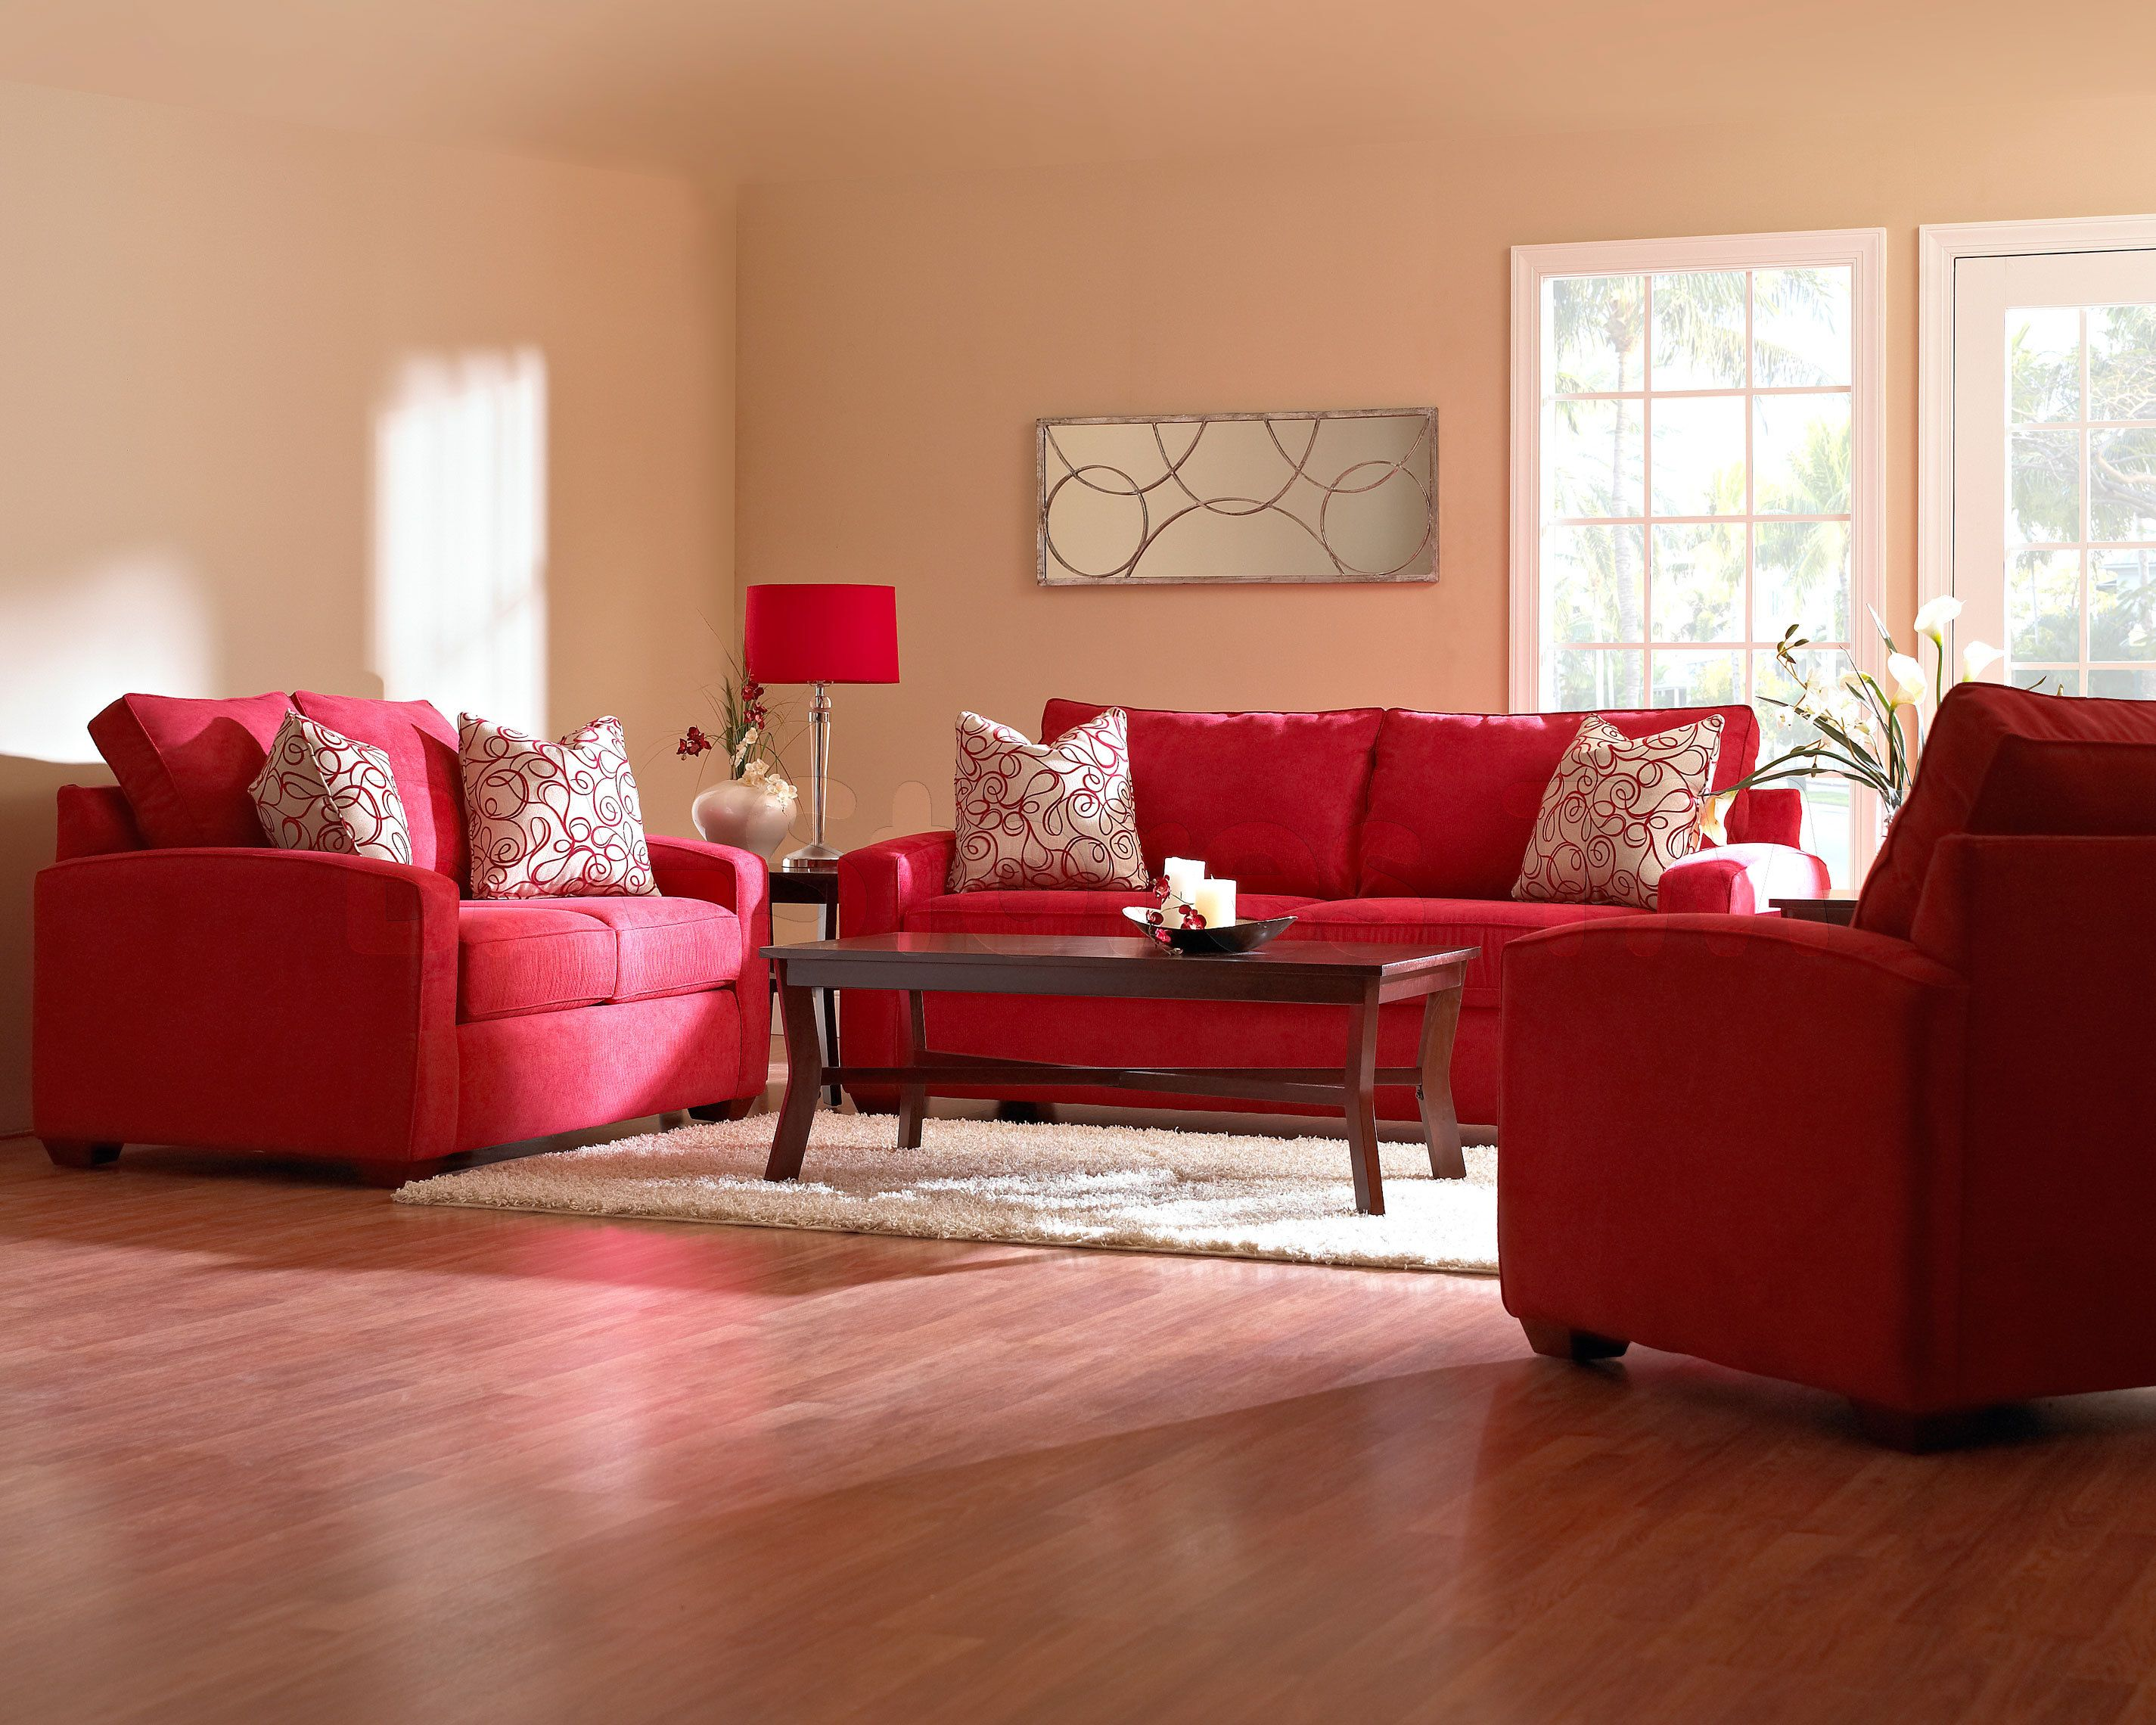 Image Result For Living Rooms With Red Furniture